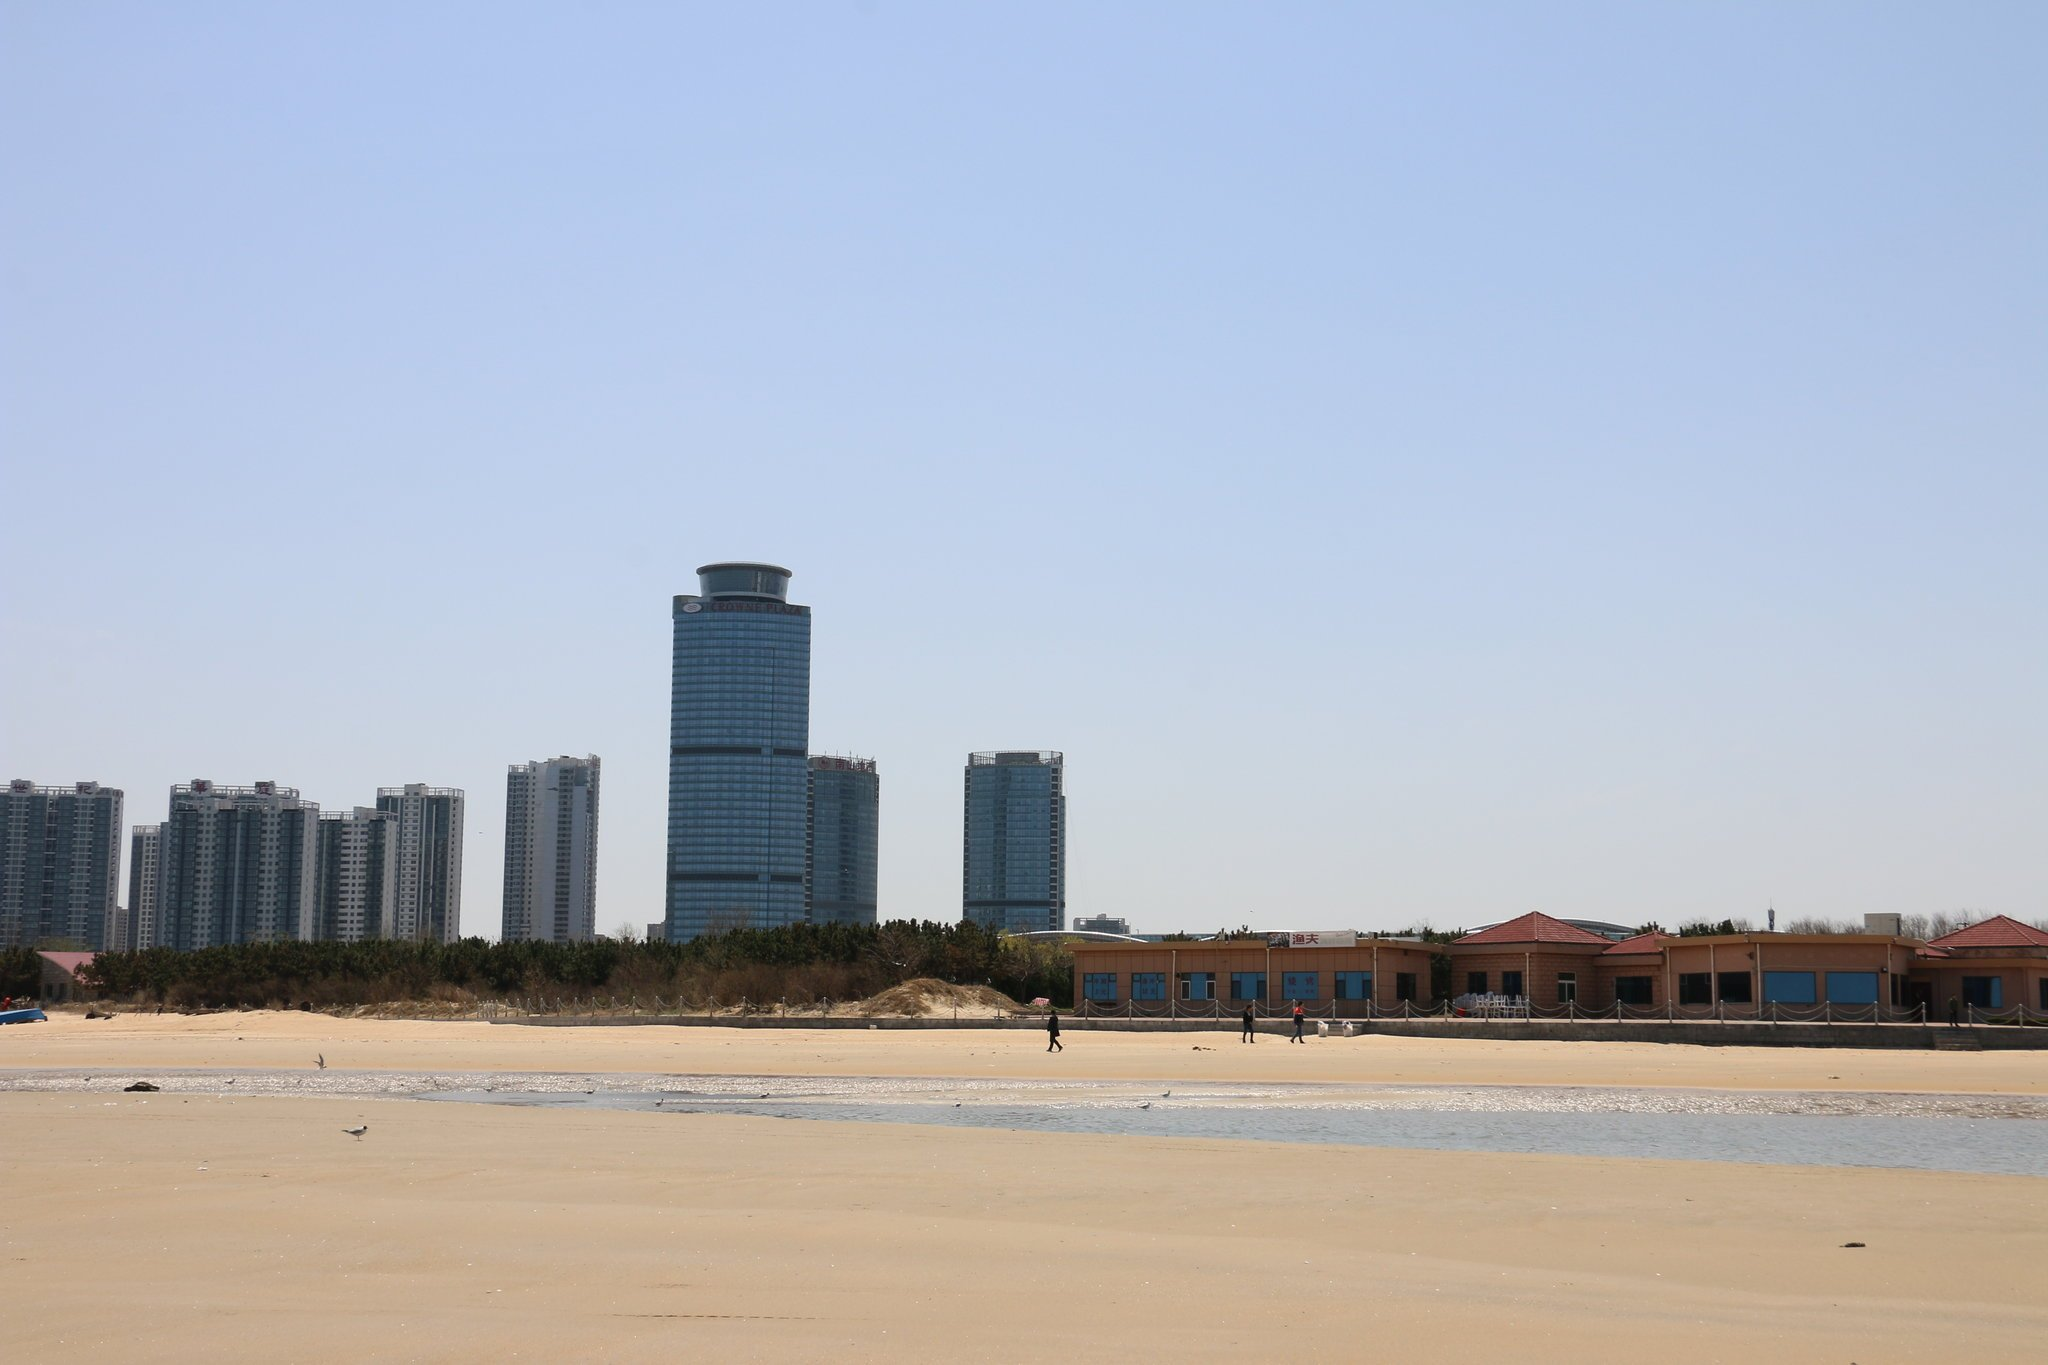 Crowne Plaza Yantai Seaview